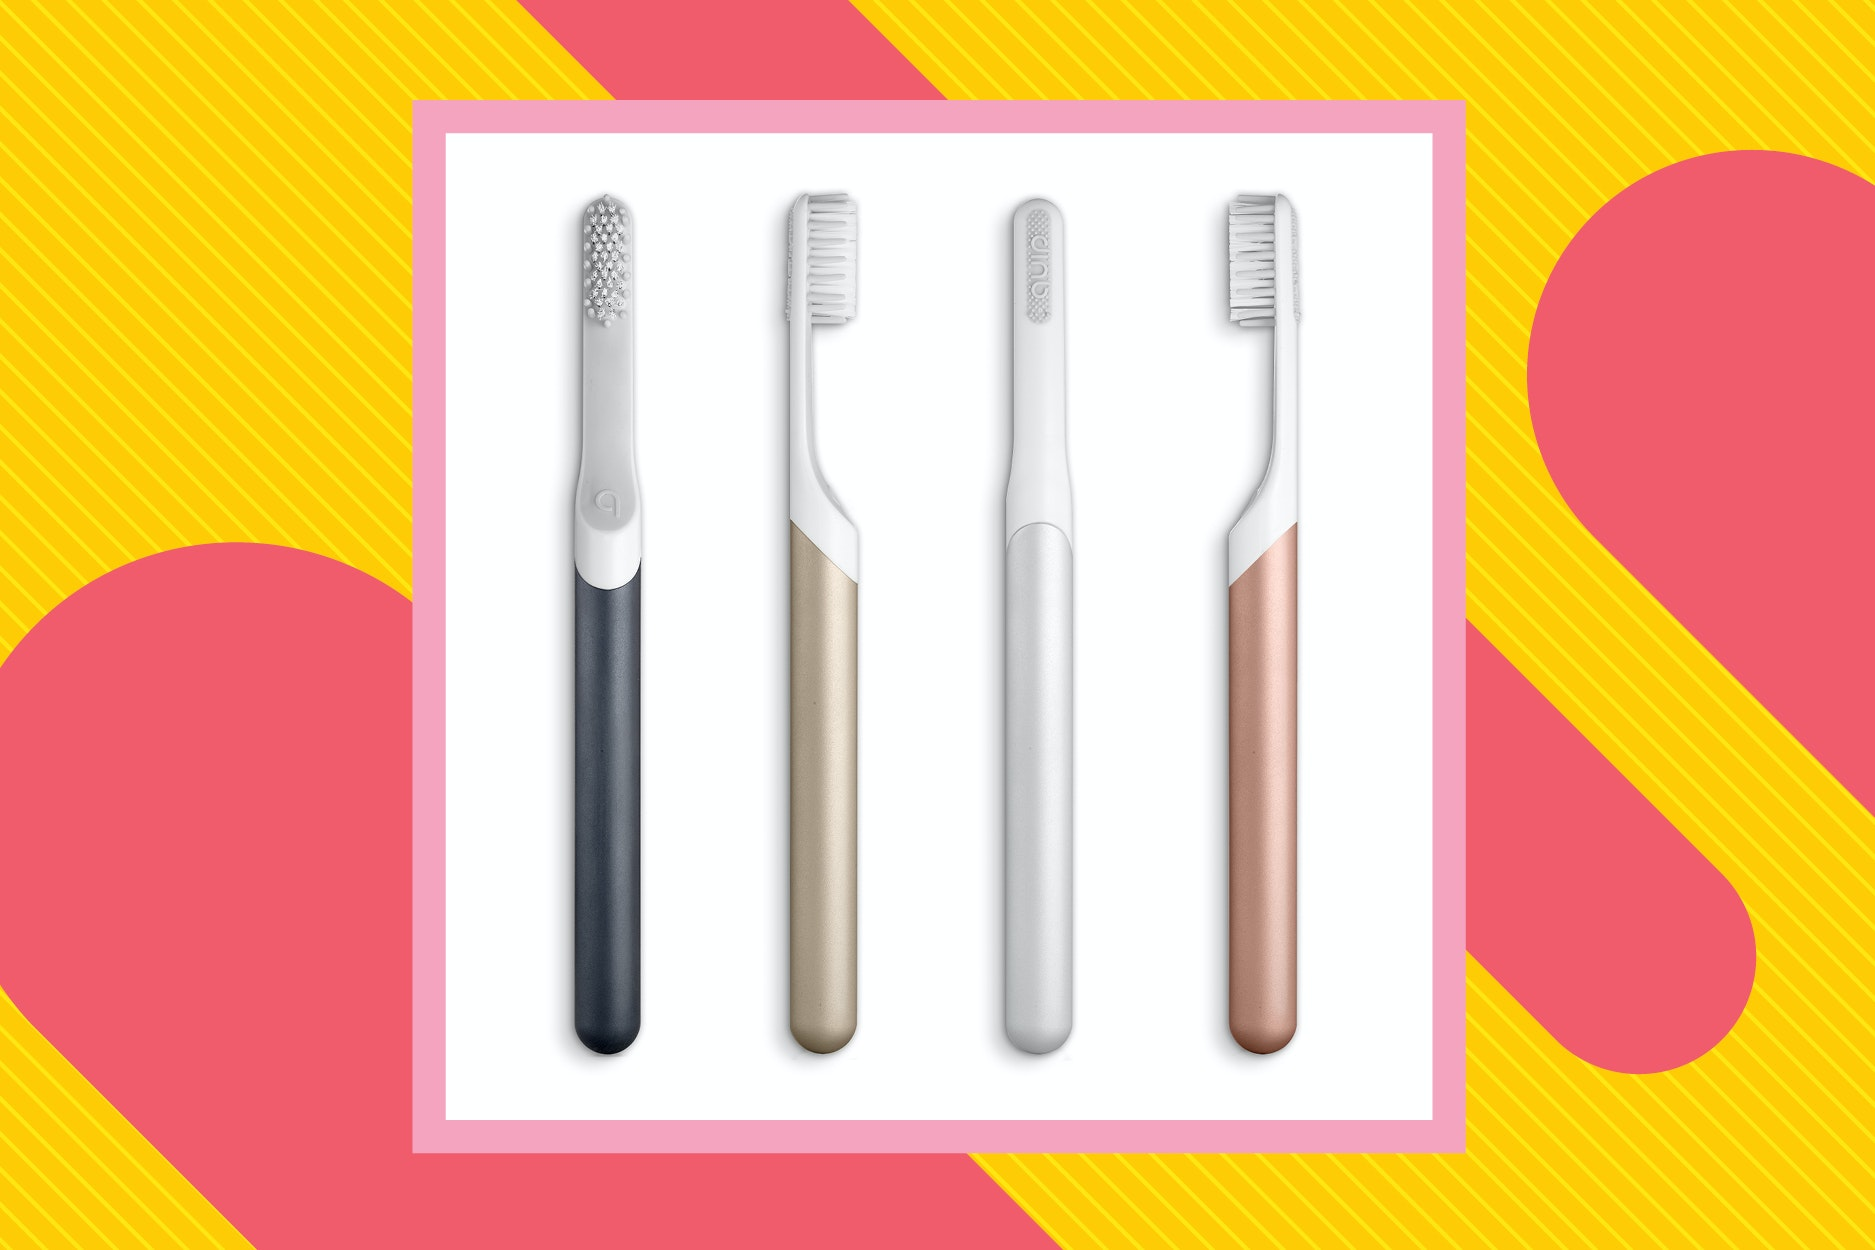 Quip toothbrushes are both compact and visually appealing.